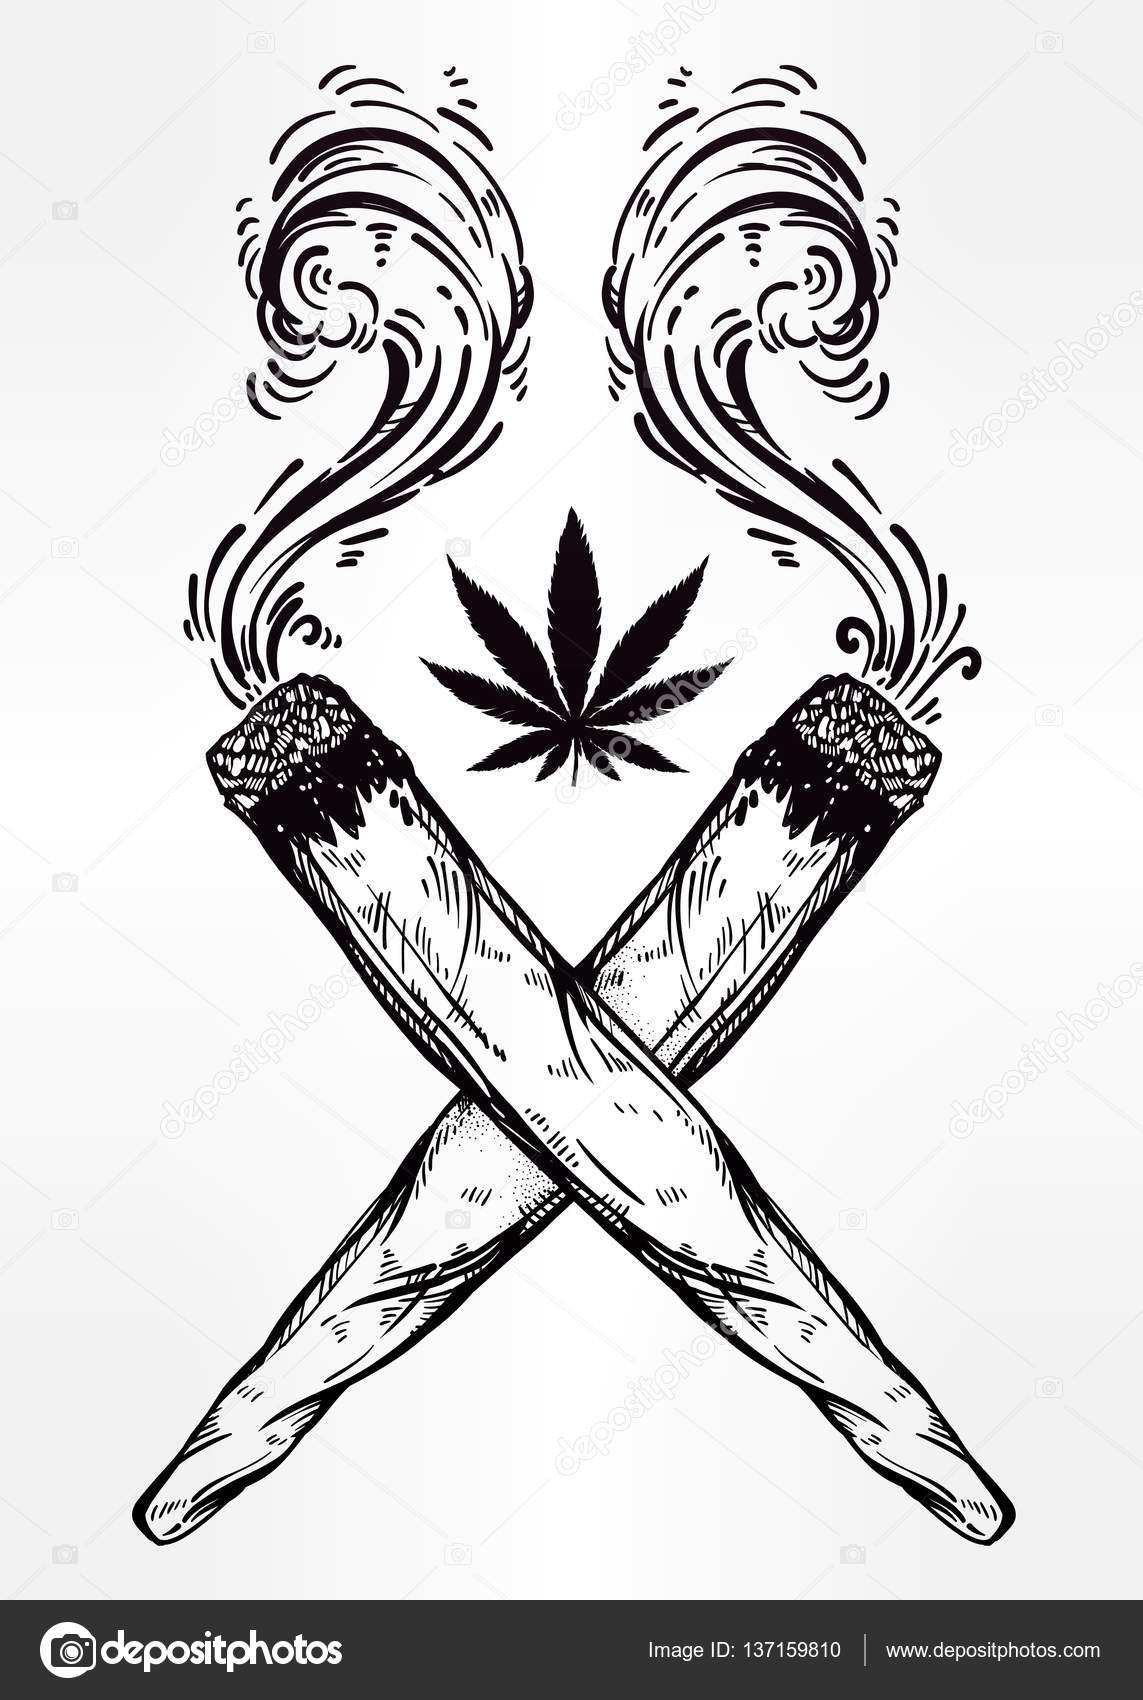 lips coloring page - stock illustration two crossed weed joints with